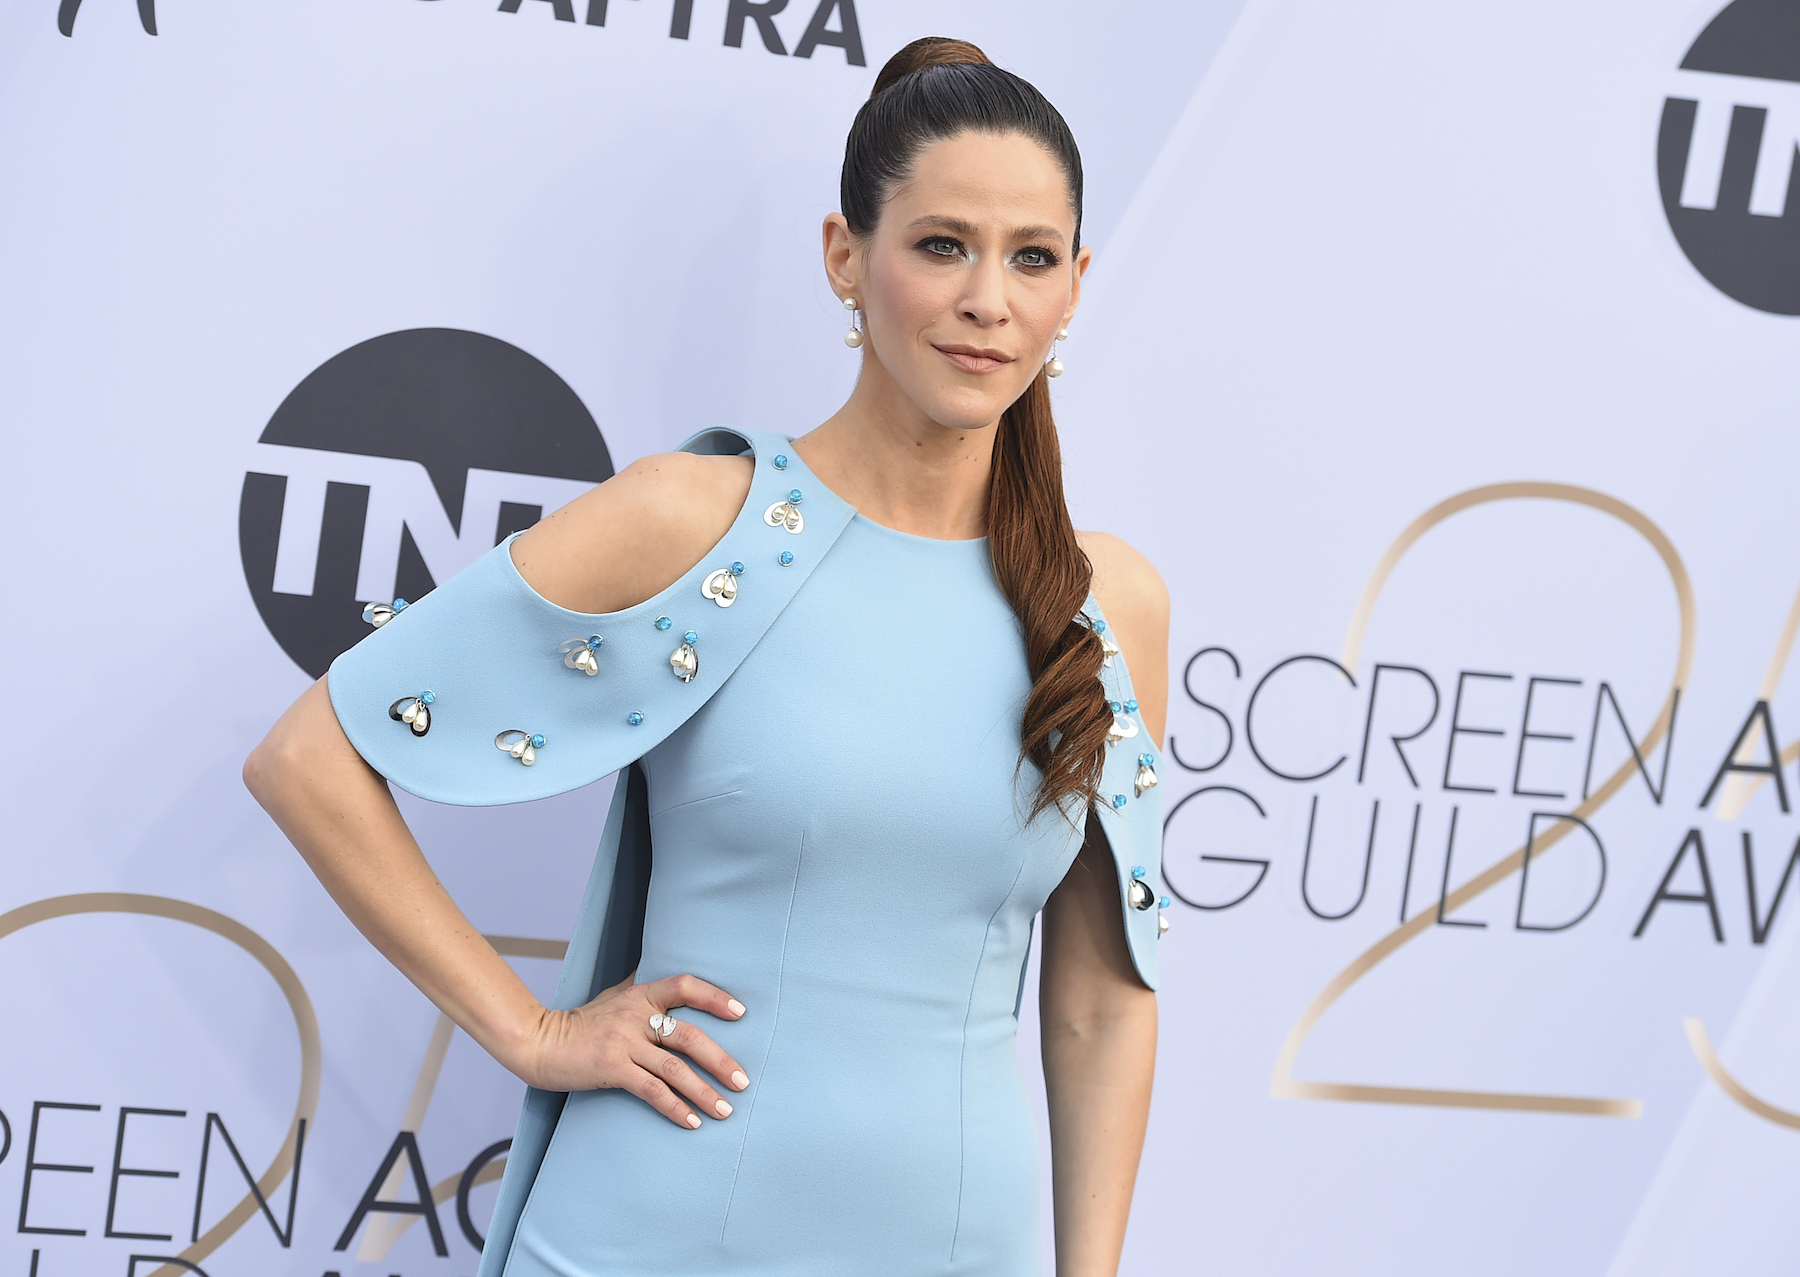 "<div class=""meta image-caption""><div class=""origin-logo origin-image ap""><span>AP</span></div><span class=""caption-text"">Jackie Tohn arrives at the 25th annual Screen Actors Guild Awards at the Shrine Auditorium & Expo Hall on Sunday, Jan. 27, 2019, in Los Angeles. (Jordan Strauss/Invision/AP)</span></div>"